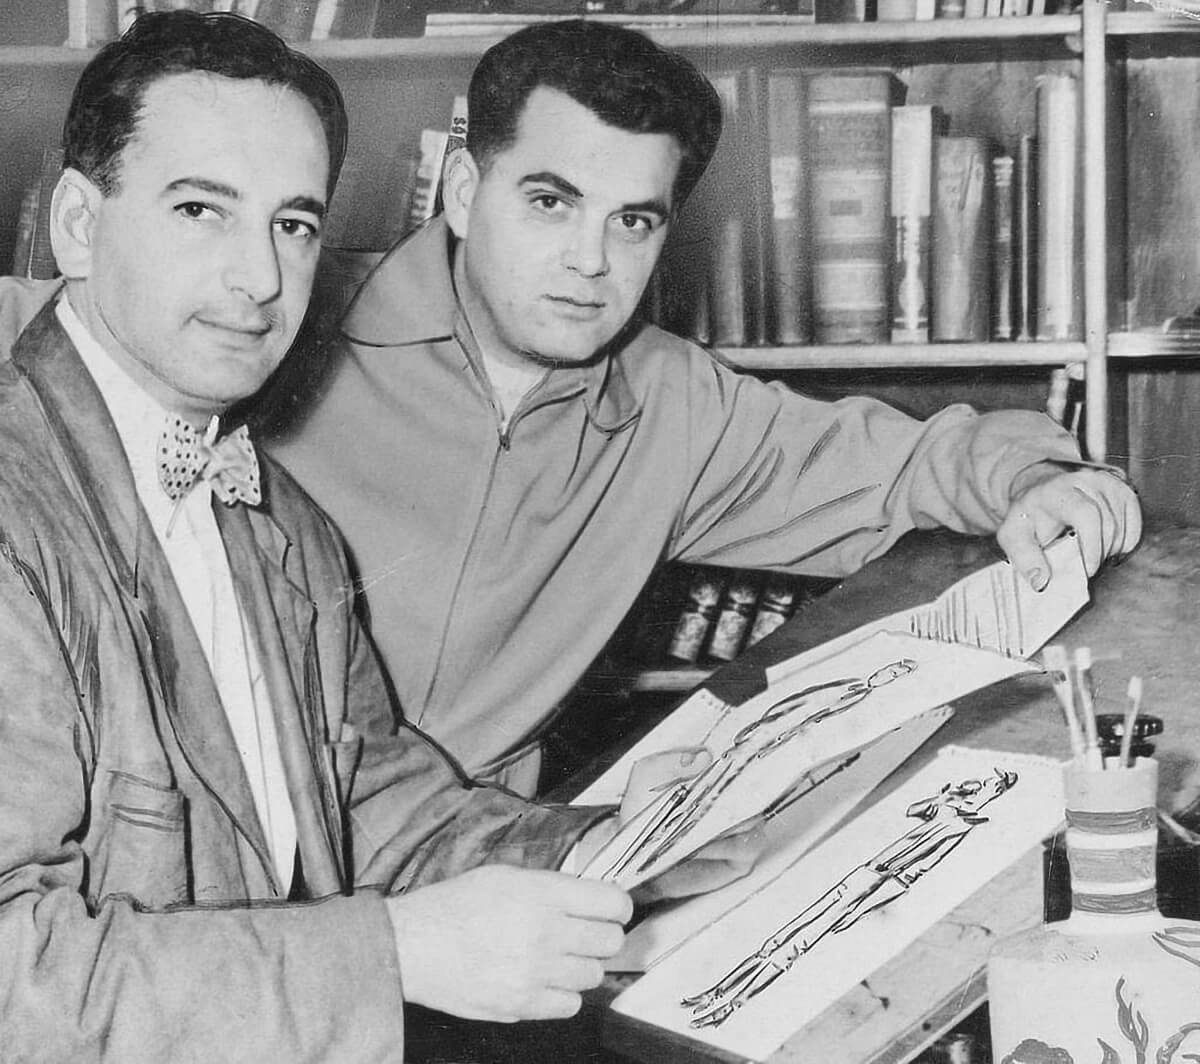 Joe Simon and Jack Kirby